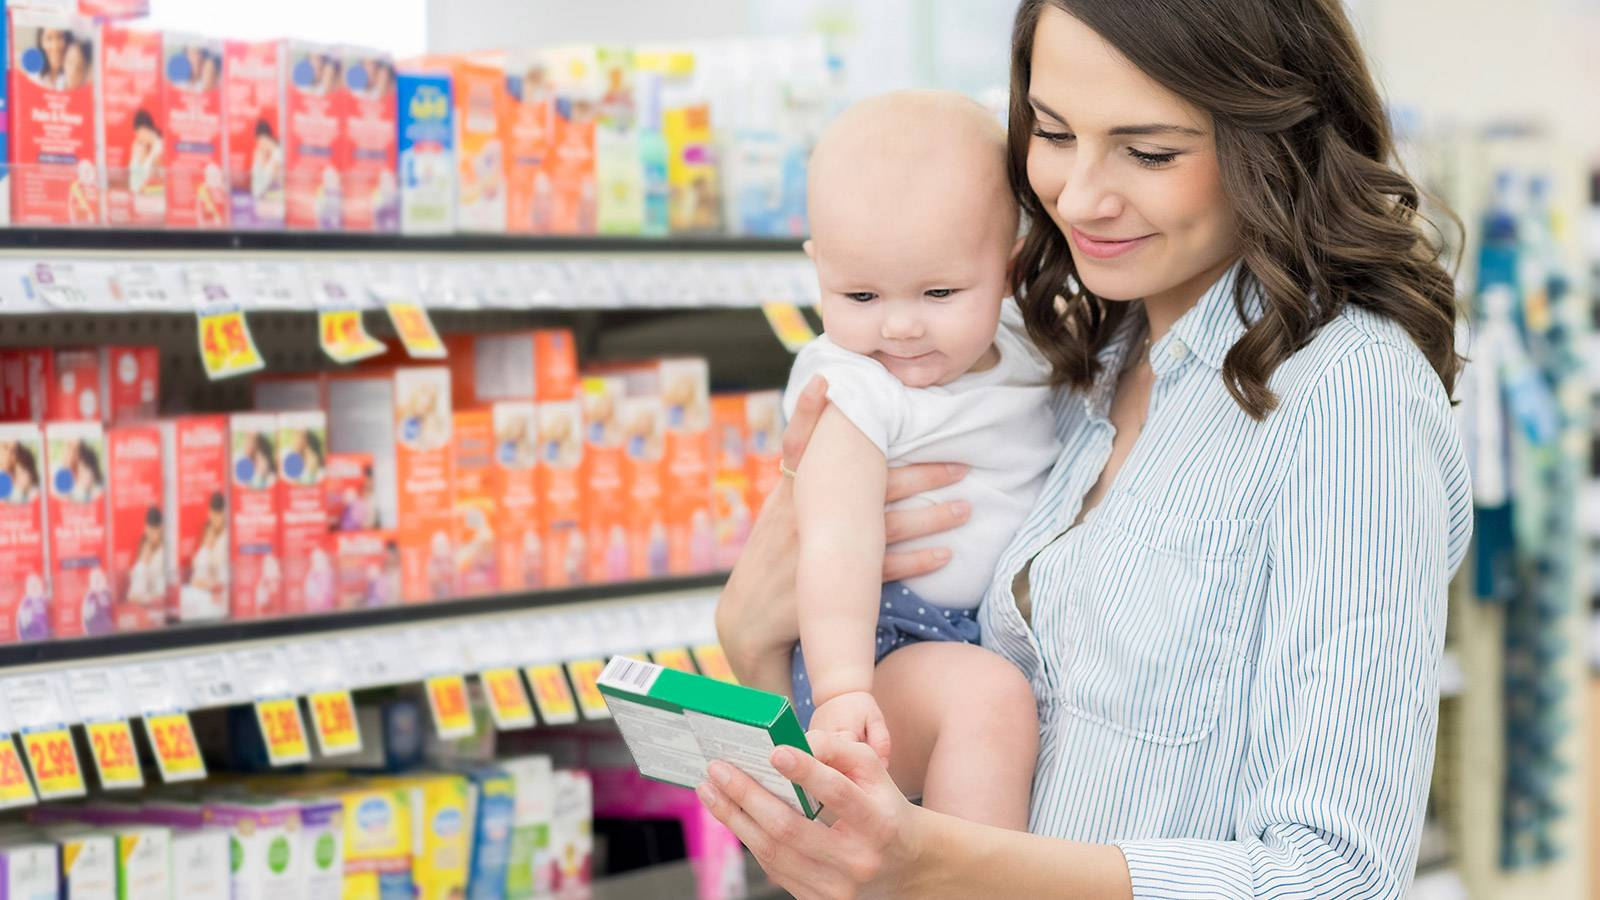 Babies-What-OTC-meds-can-you-take-safely-when-you're-breastfeeding-1